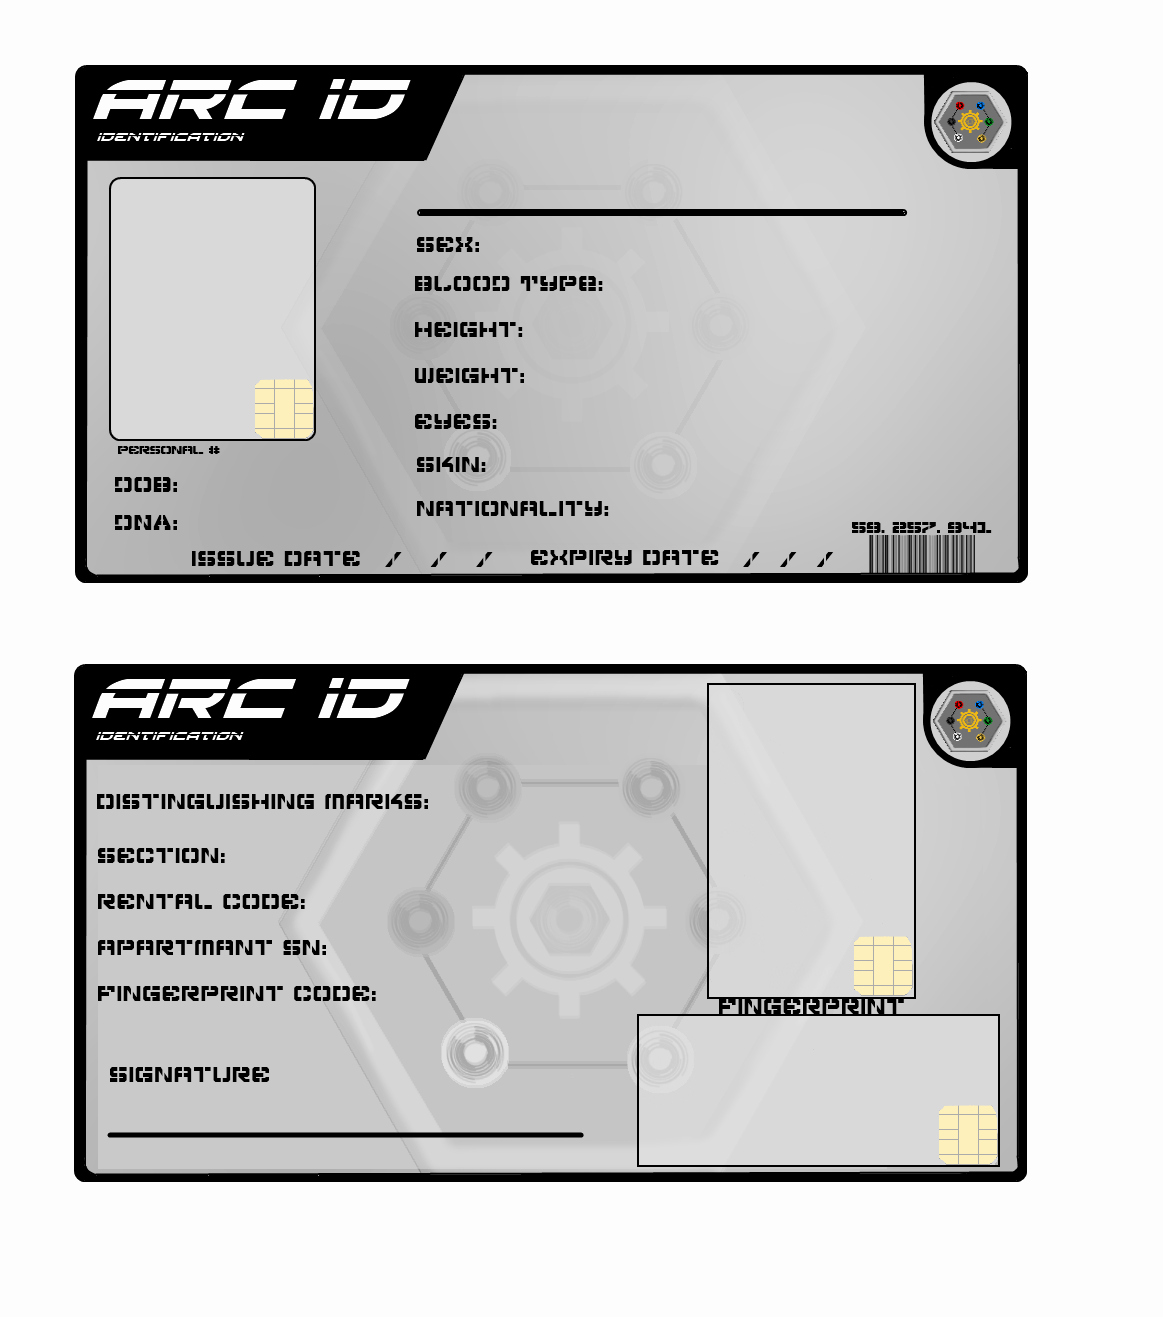 blank state identification card